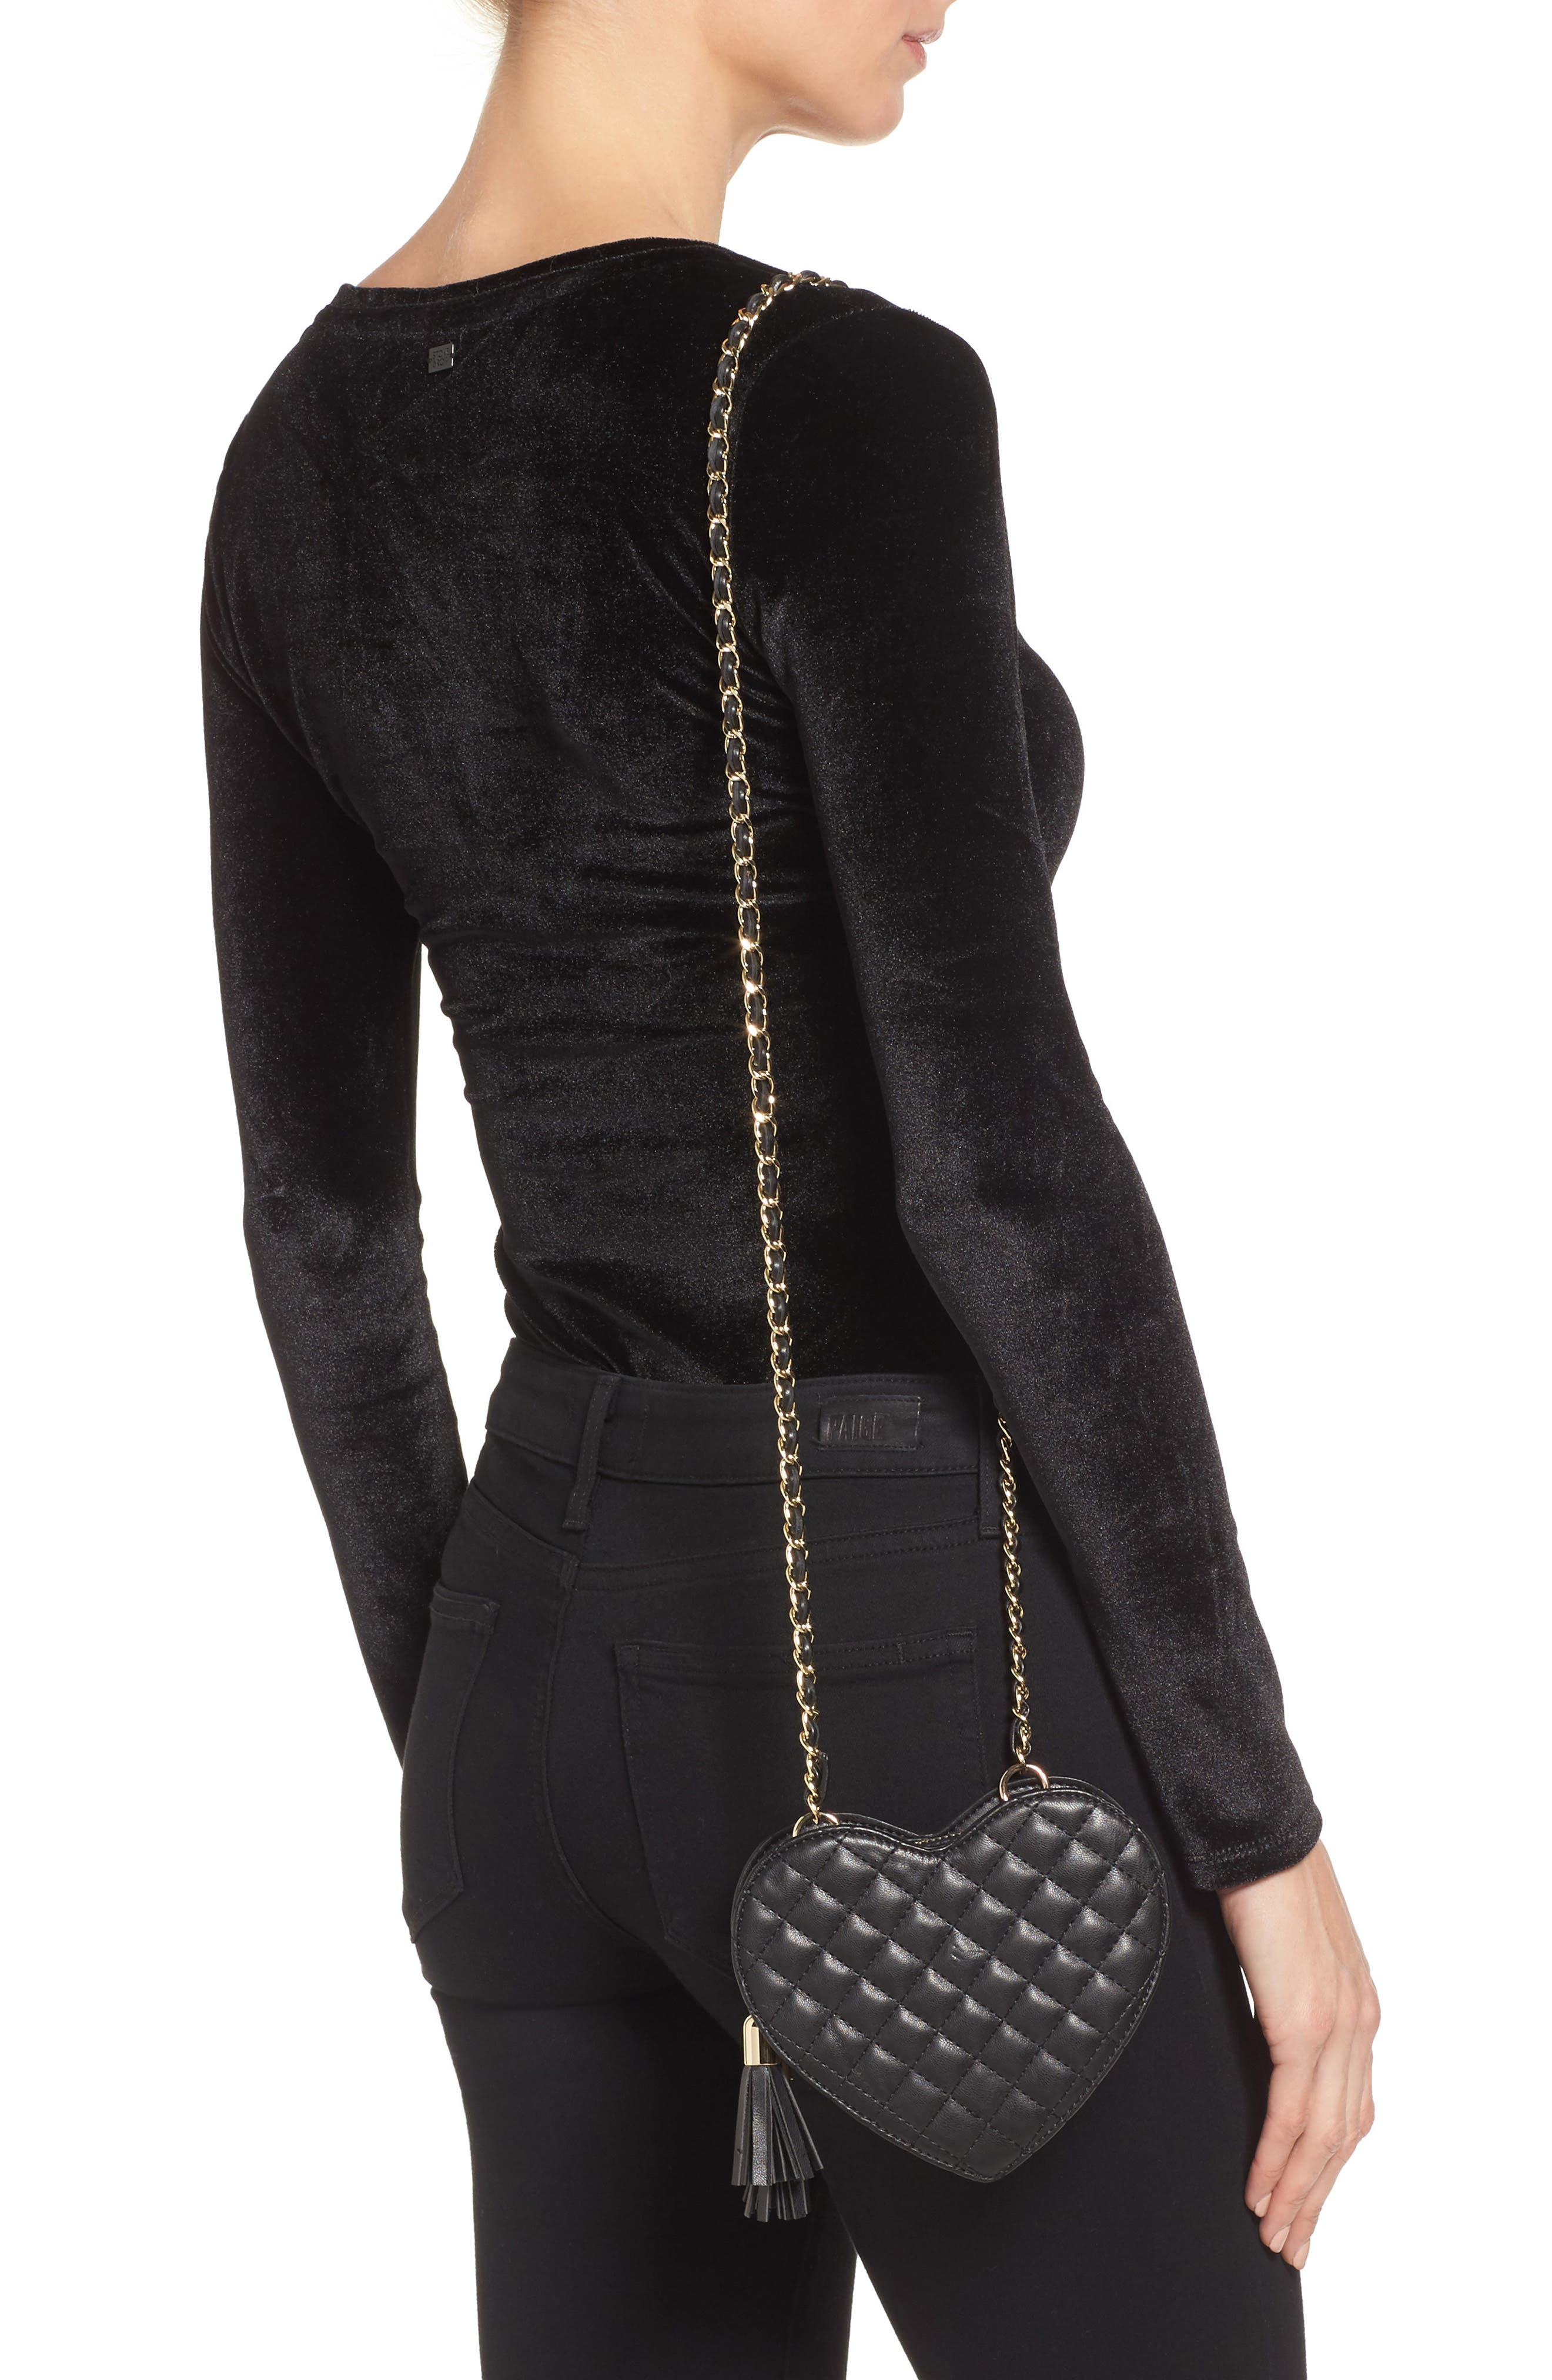 Mali + Lili Quilted Heart Vegan Leather Crossbody Bag,                             Alternate thumbnail 2, color,                             BLACK